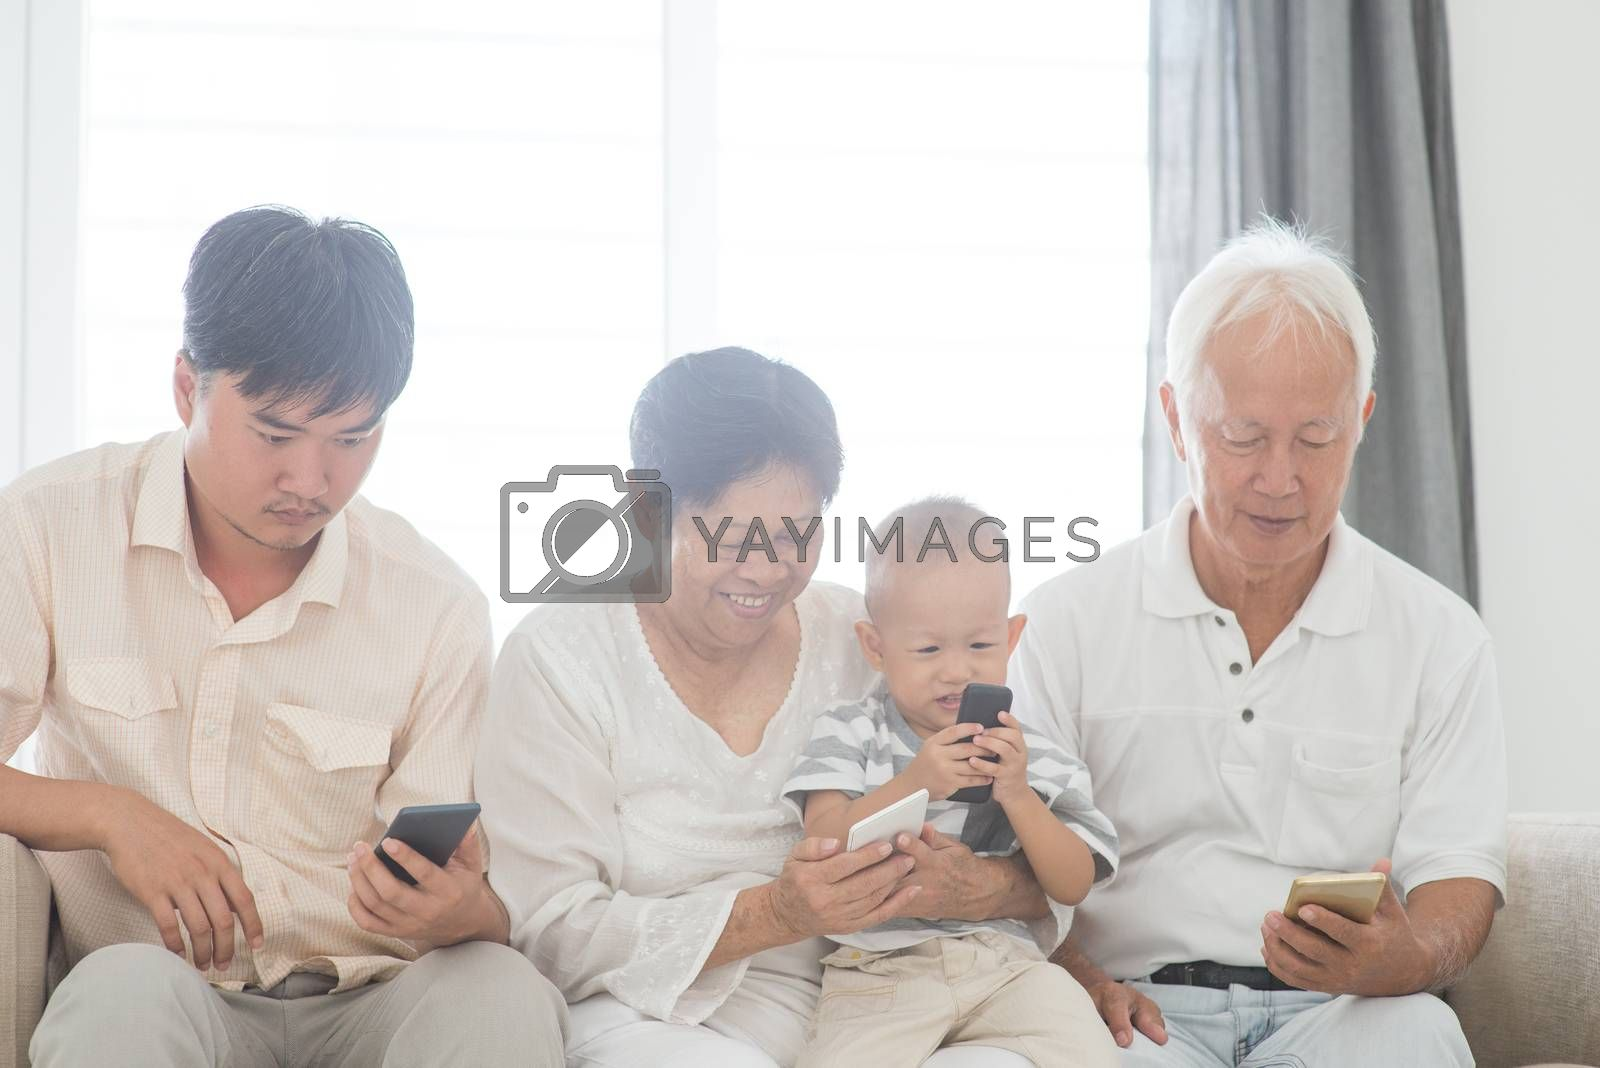 Technology, gadgets addicted family. Member family busy with their smart phone, communication problem.